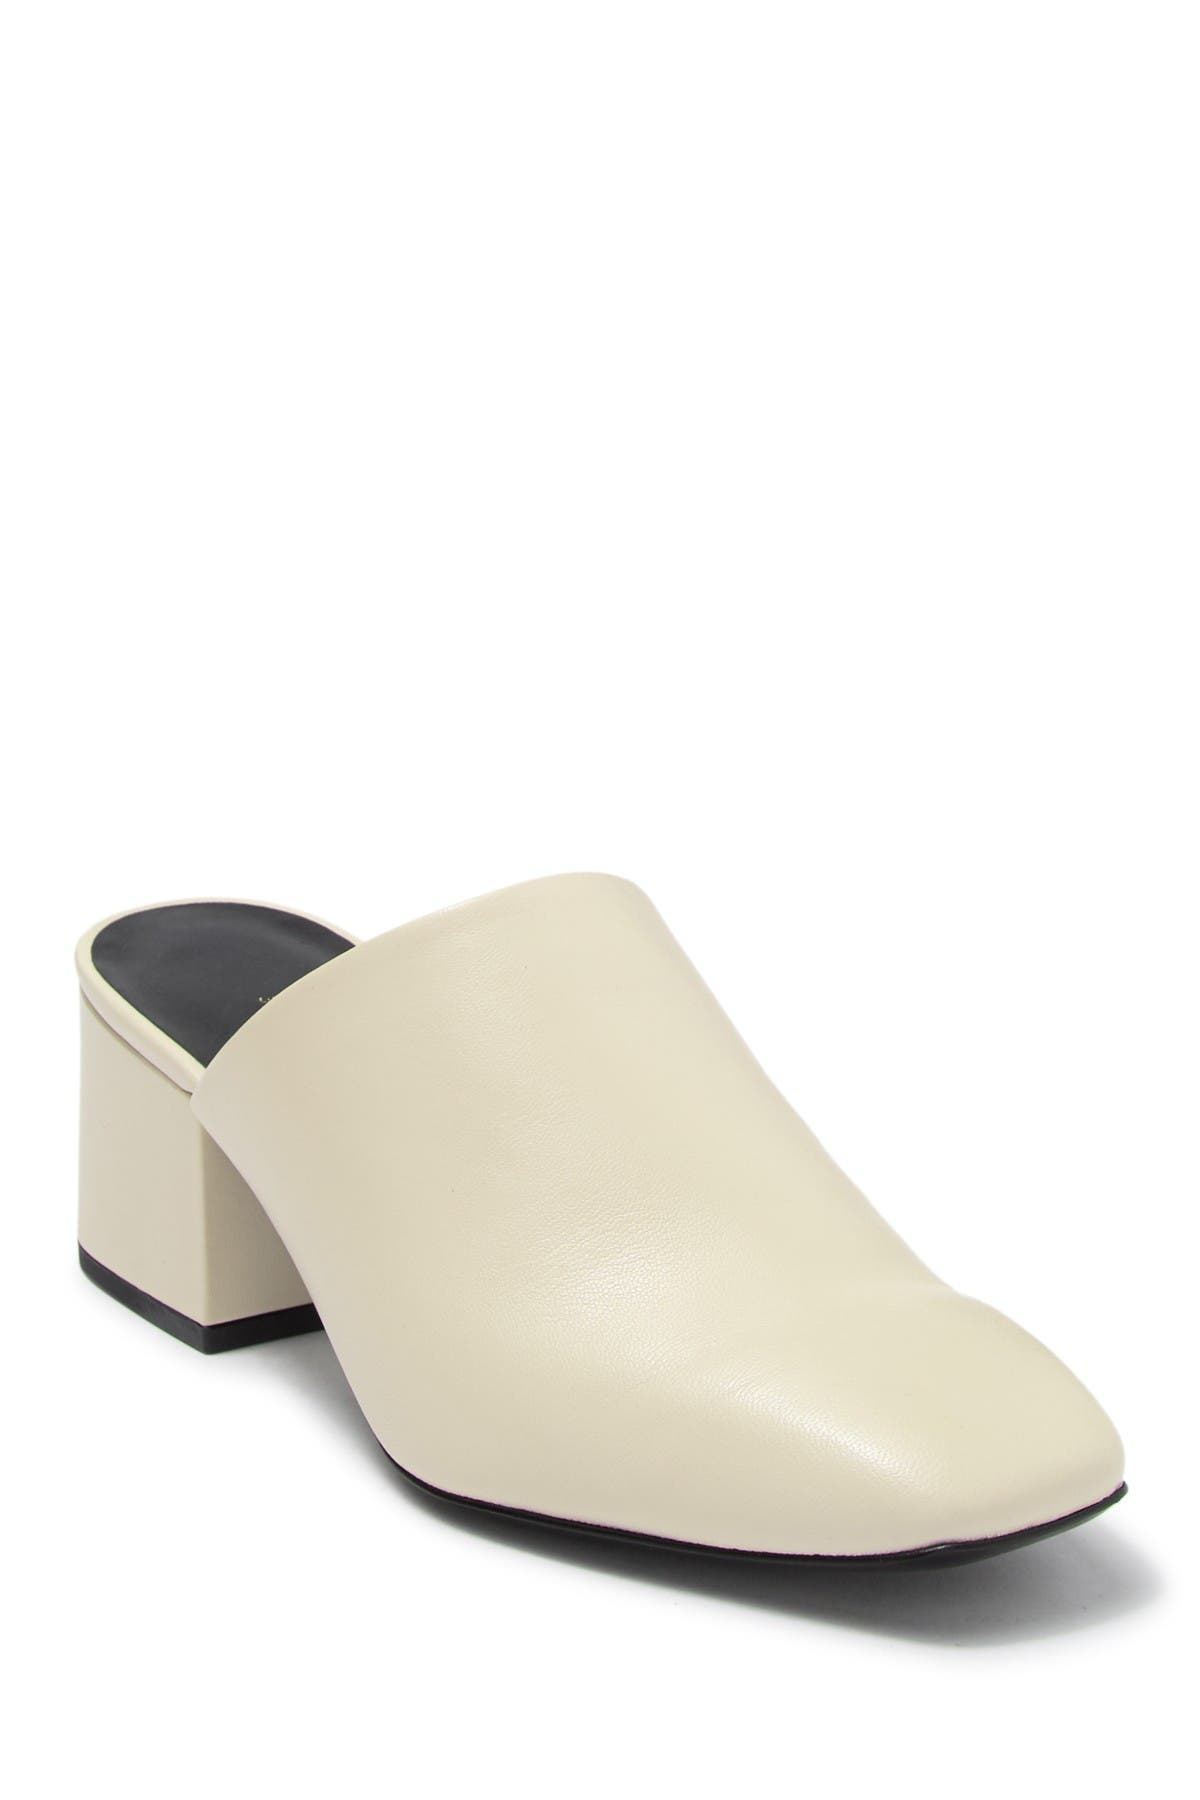 Image of 3.1 PHILLIP LIM Exclusive Leather Mule